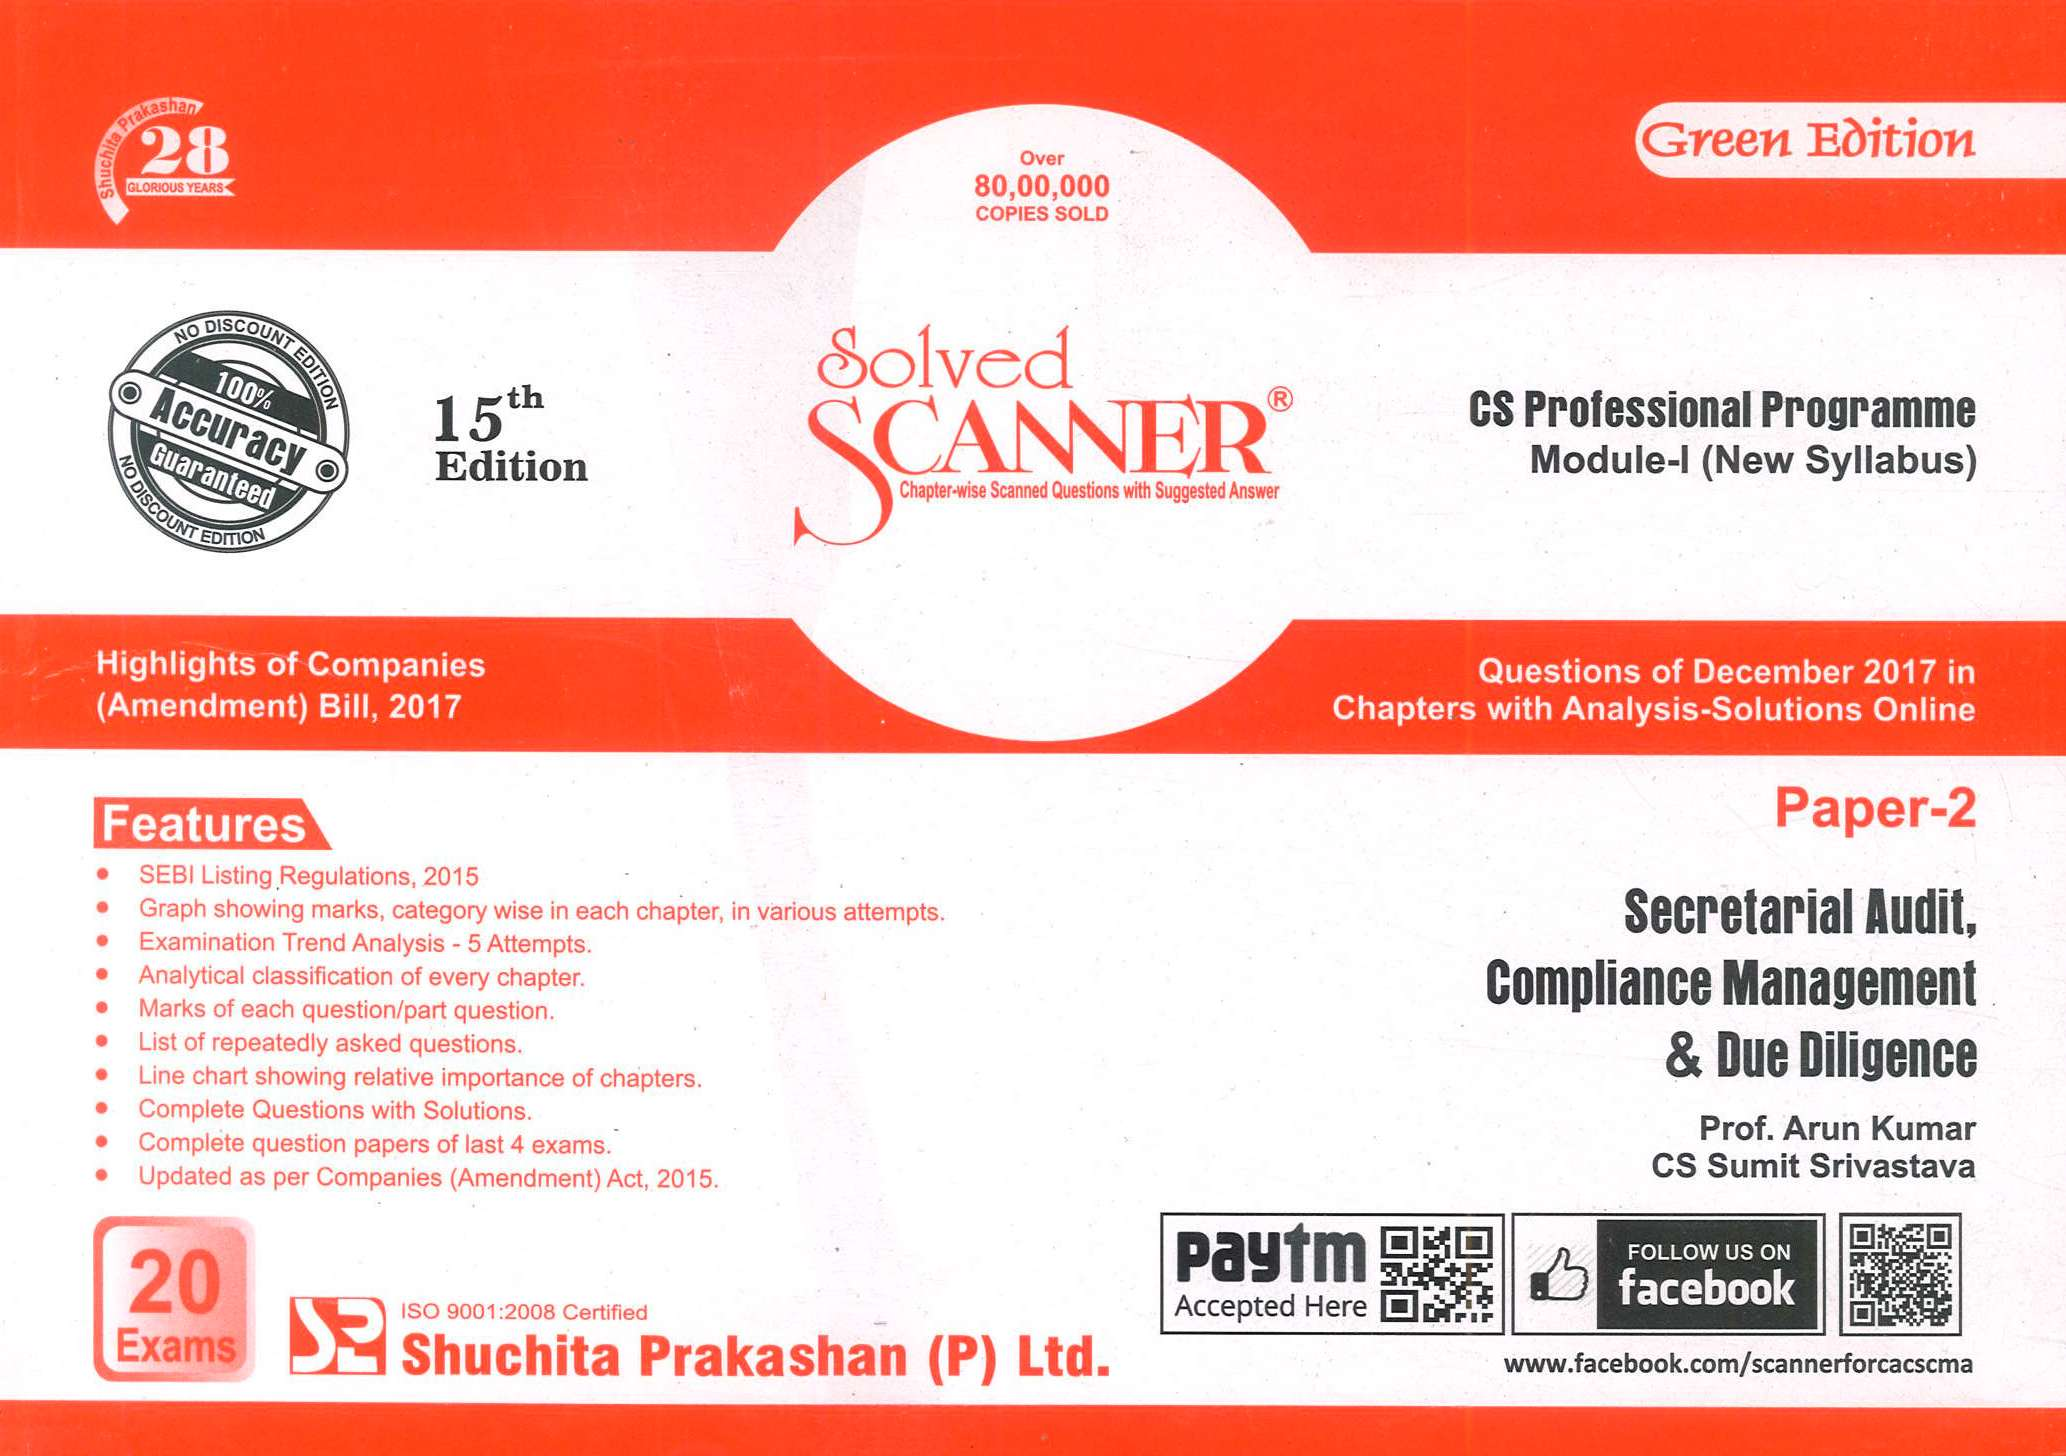 Shuchita Secretarial Audit, Compliance Management & Due Diligence Solved Scanner for June 2018 Exam for CS Professional Programme Module-I (New Syllabus) Paper 2 Green Edition by Prof. Arun Kumar and CS Sumit Srivastave (Shuchita Prakashan) Edition 15th 2018